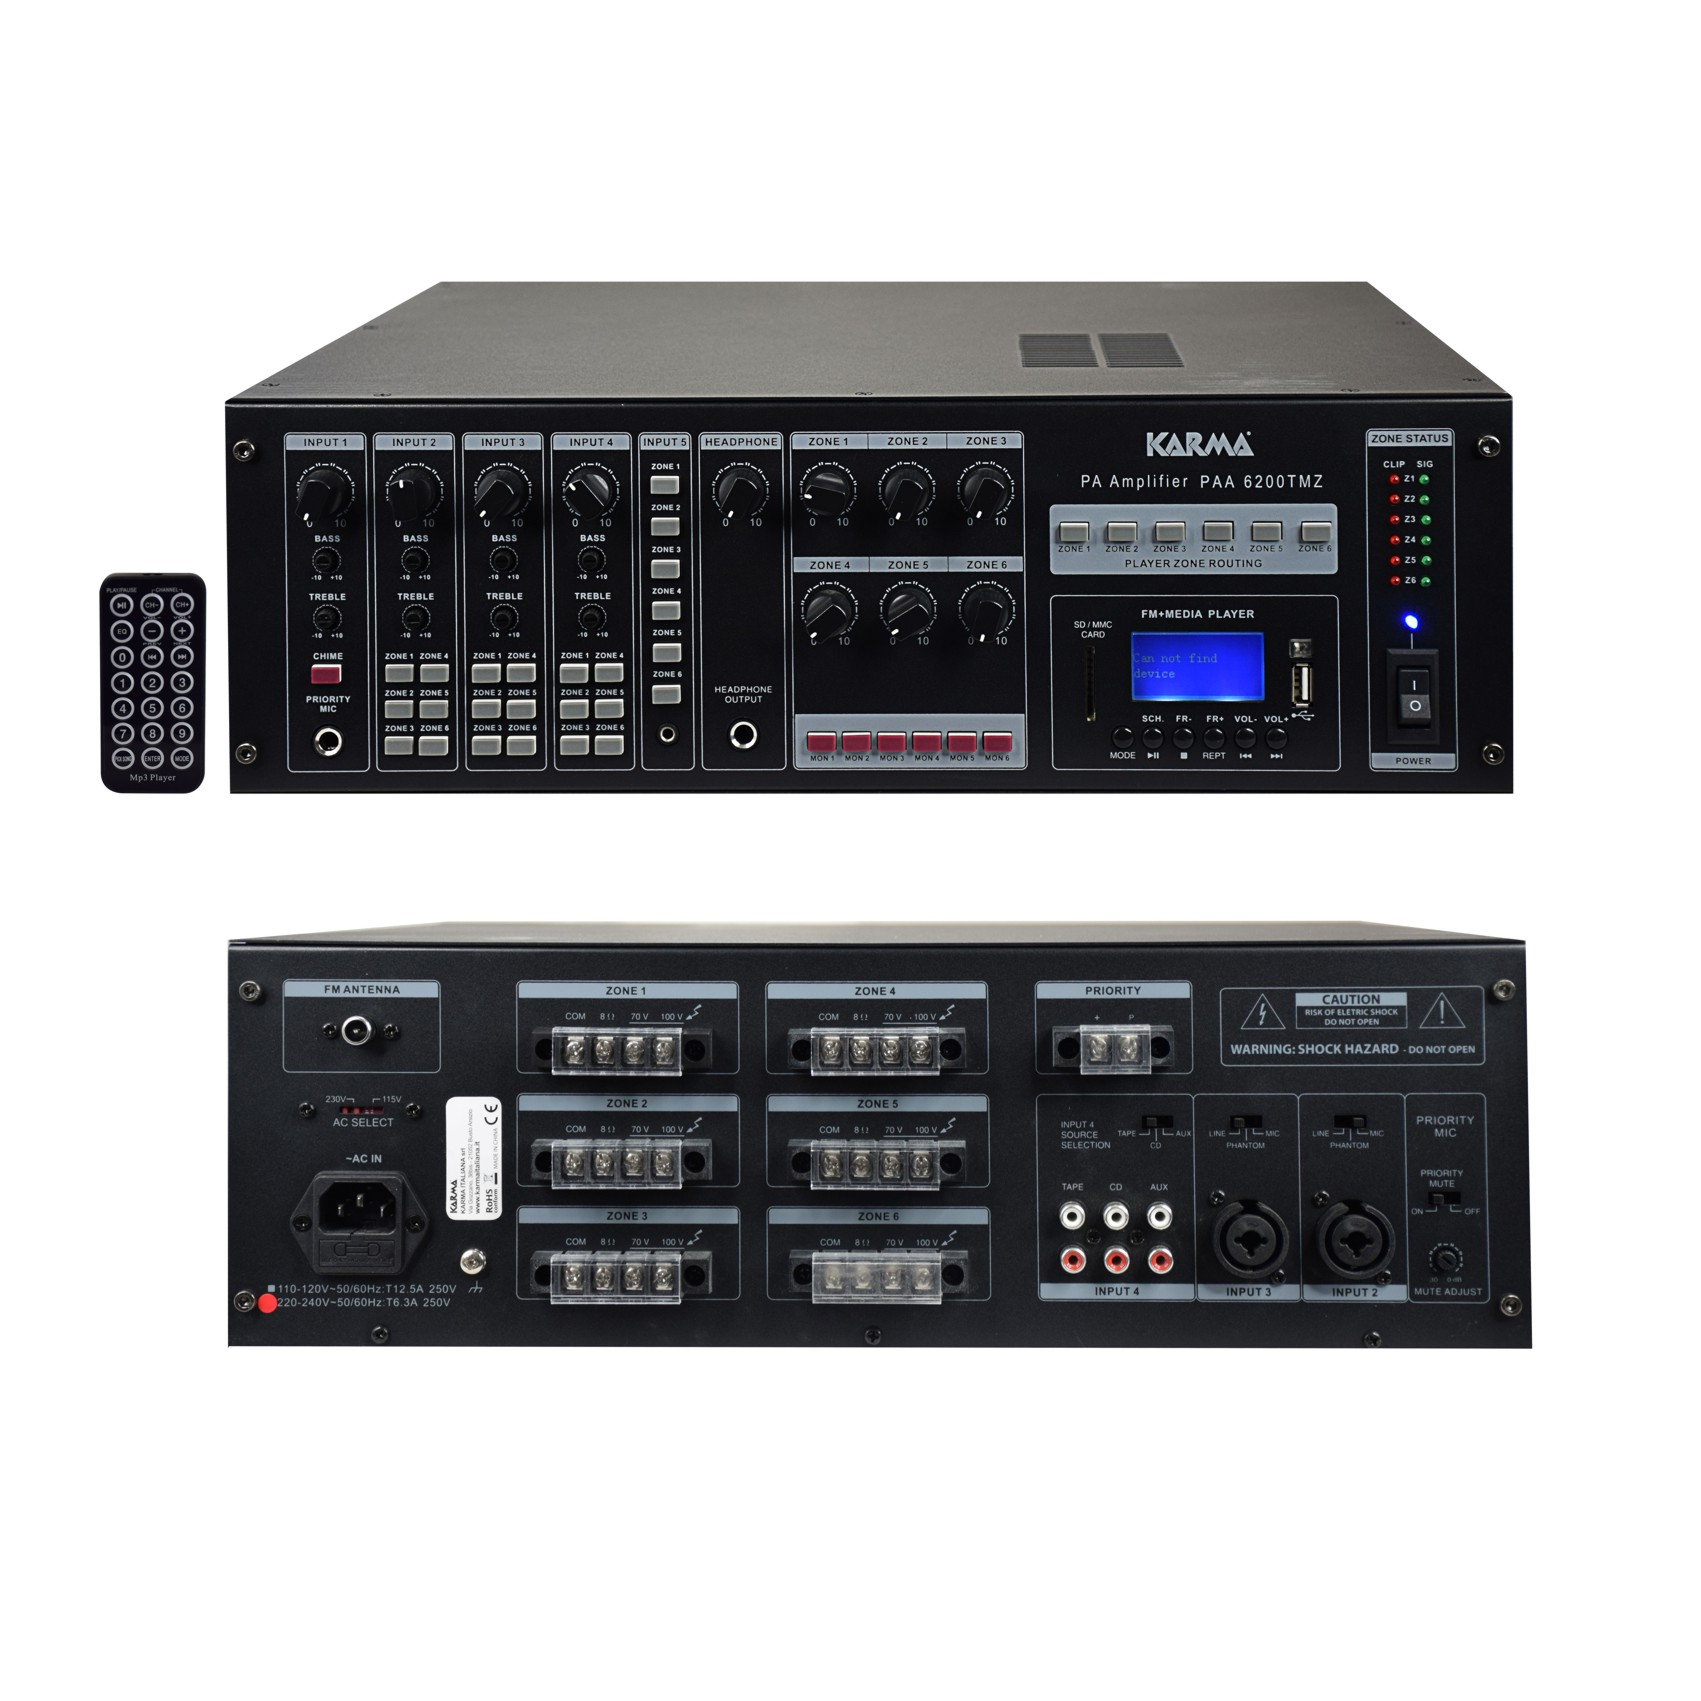 AMPLI-MIXEUR-MATRICE PA 6 ZONES 1200W MP3/FM